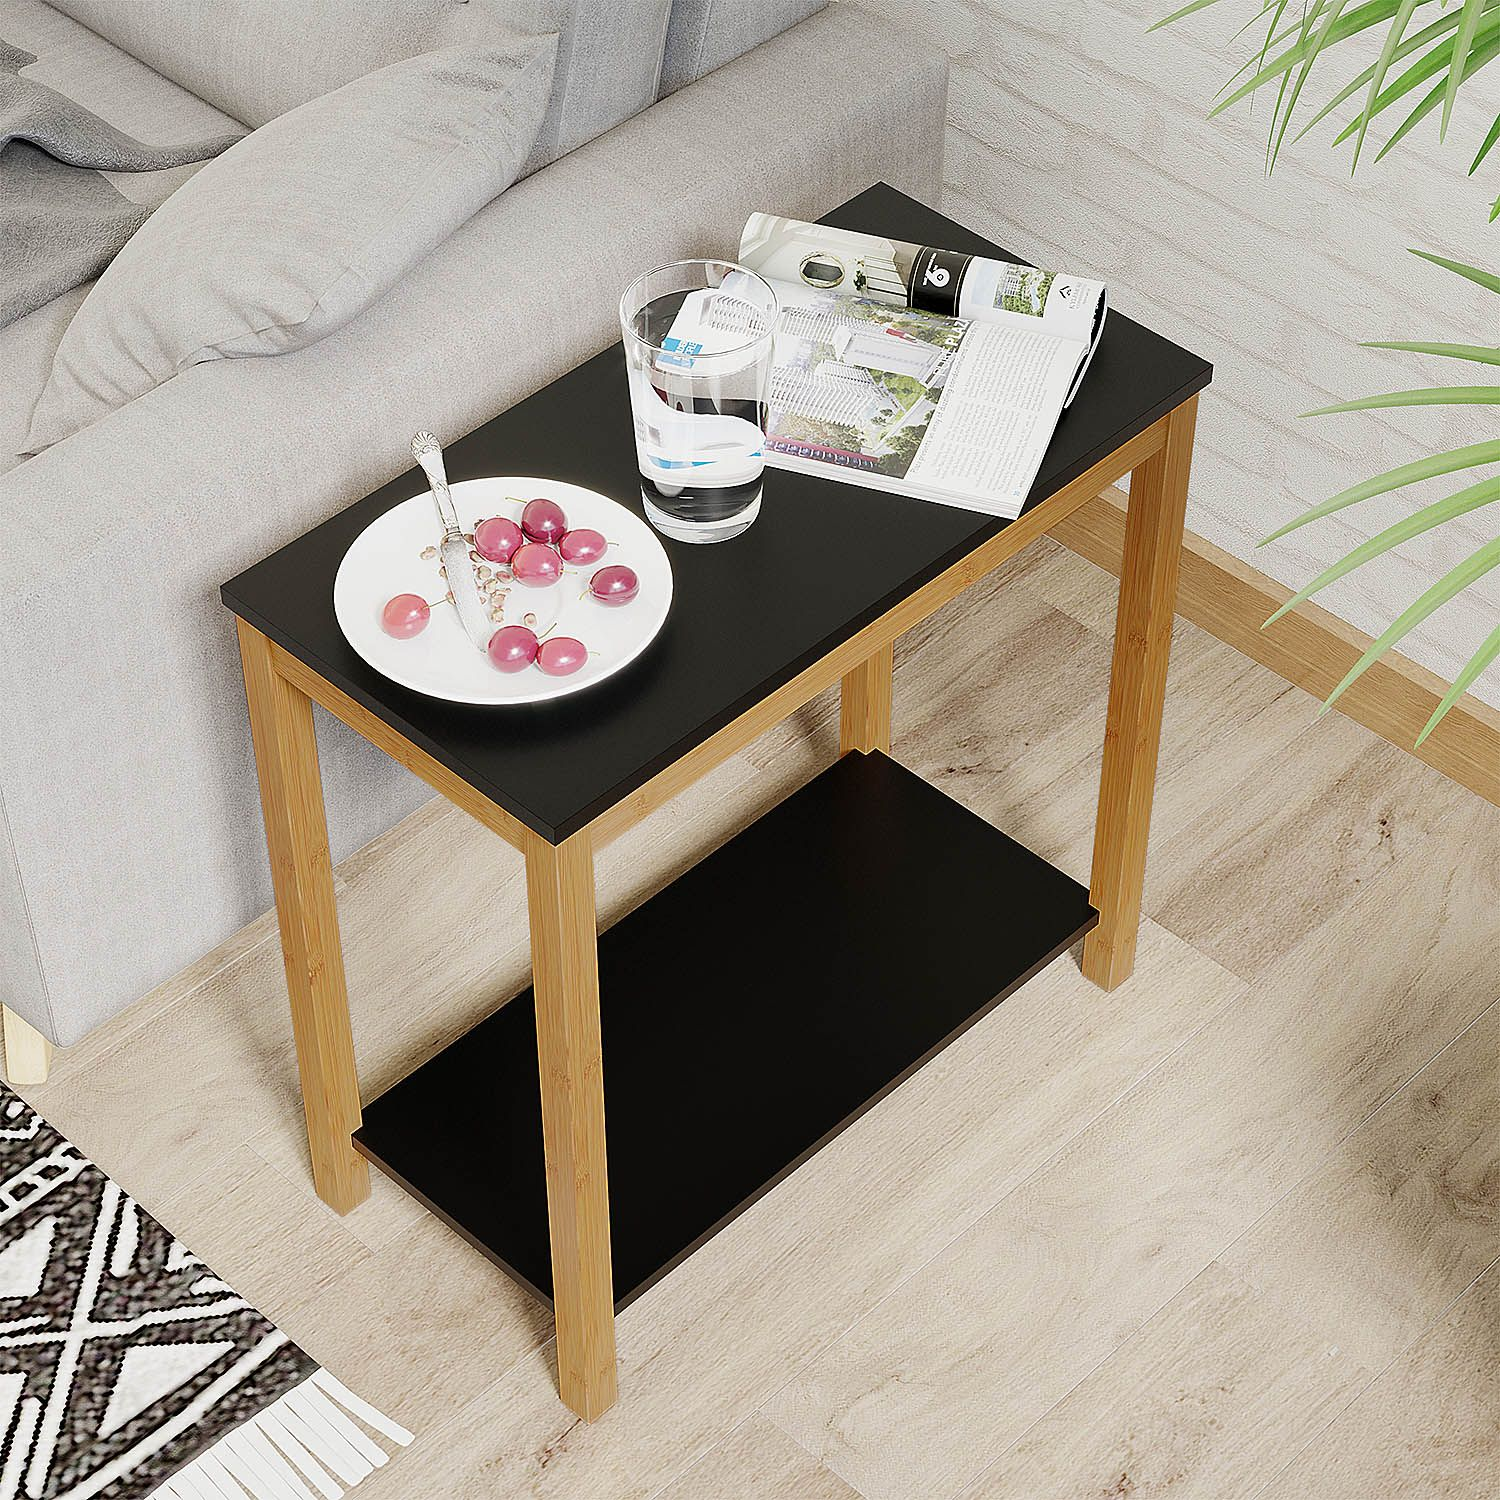 Modern Furniture For Living Room Bedroom Balcony Family And Office In Black Color Tea Room Decor Wood End Tables Living Room Decor Furniture End table vs side table